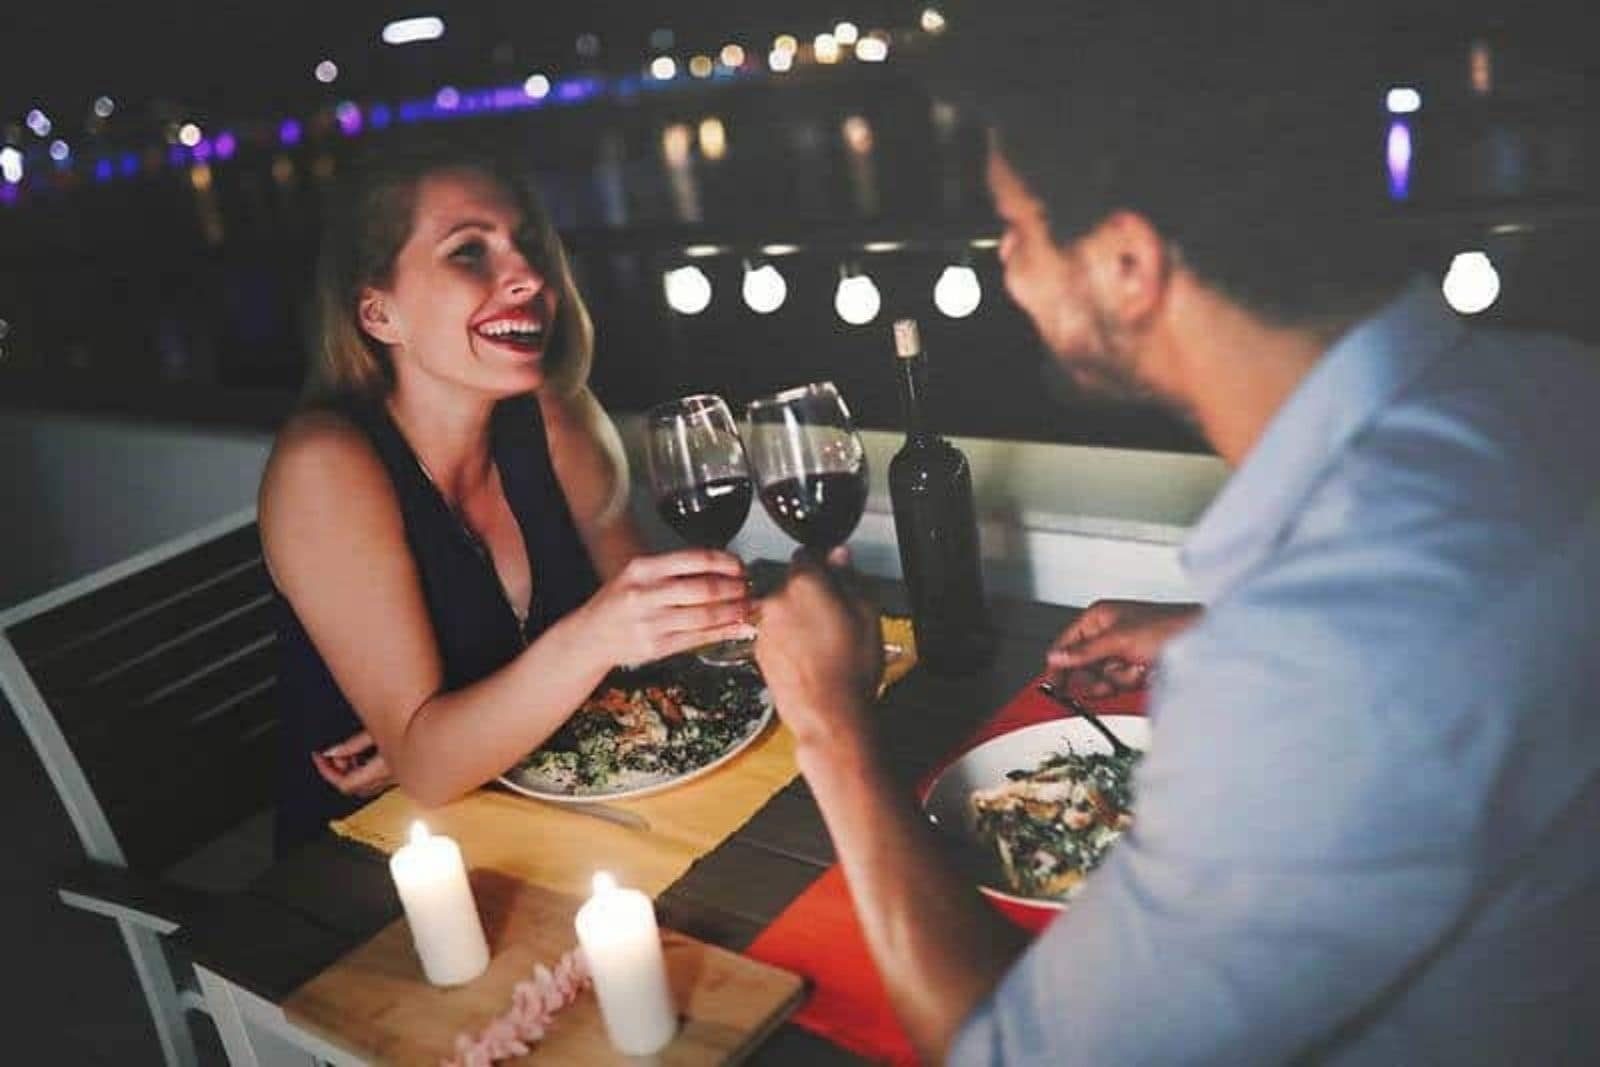 couple having dinner date at restaurant